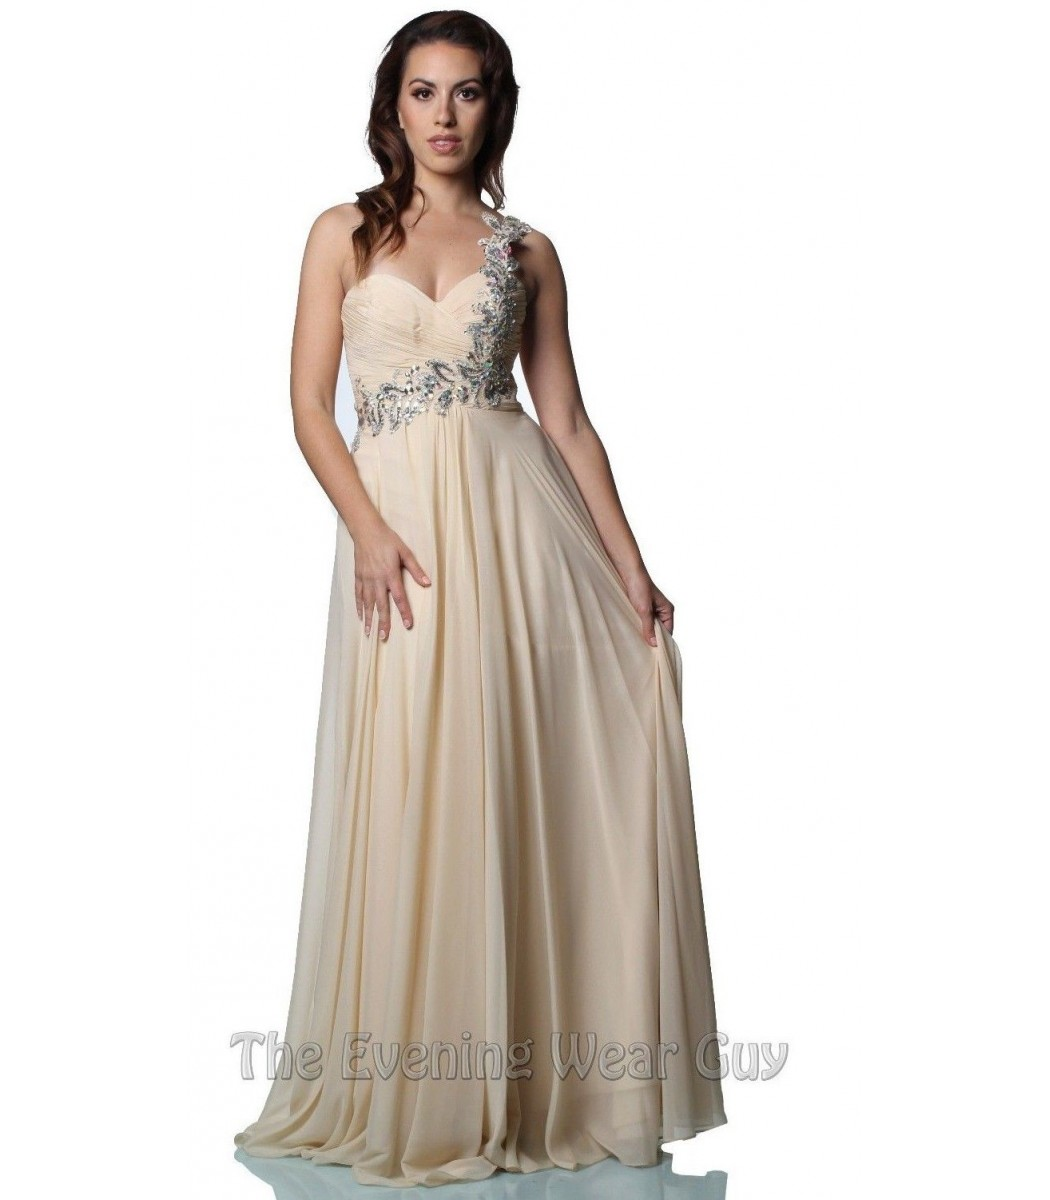 Night Moves by Allure 6679 Champagne Evening Gown Prom Dress Size 4 ...